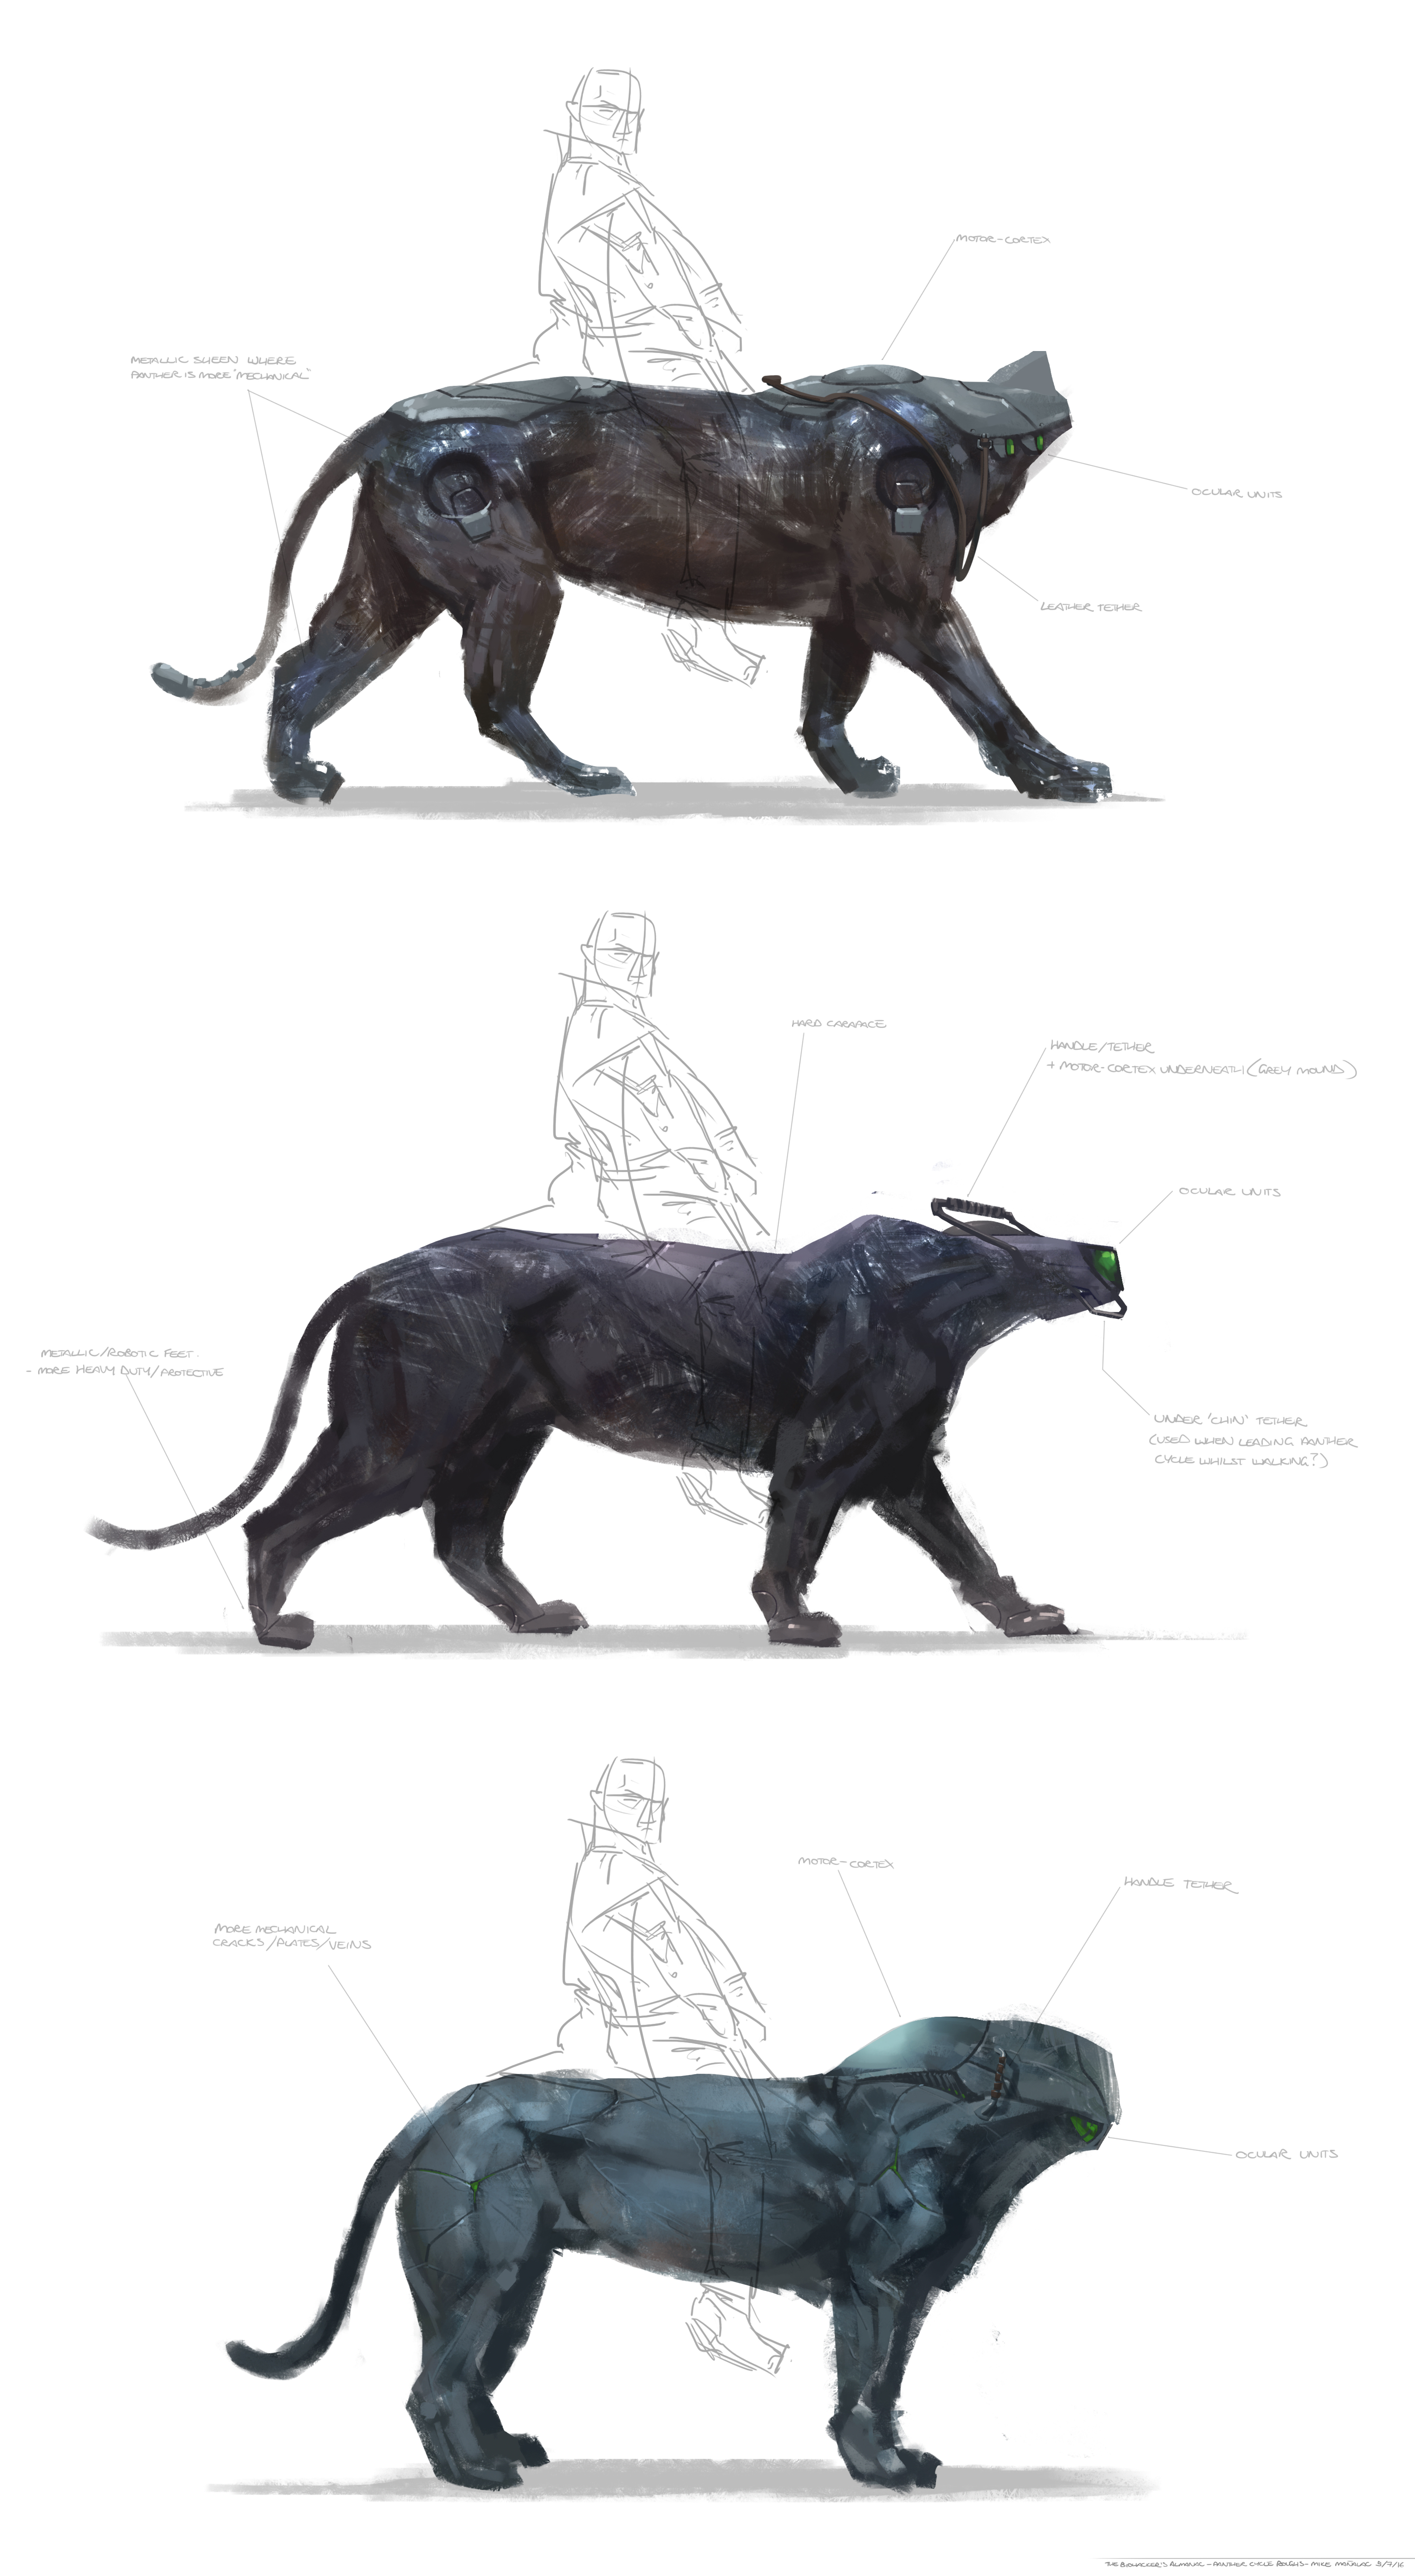 Sketches of the PantherCycle